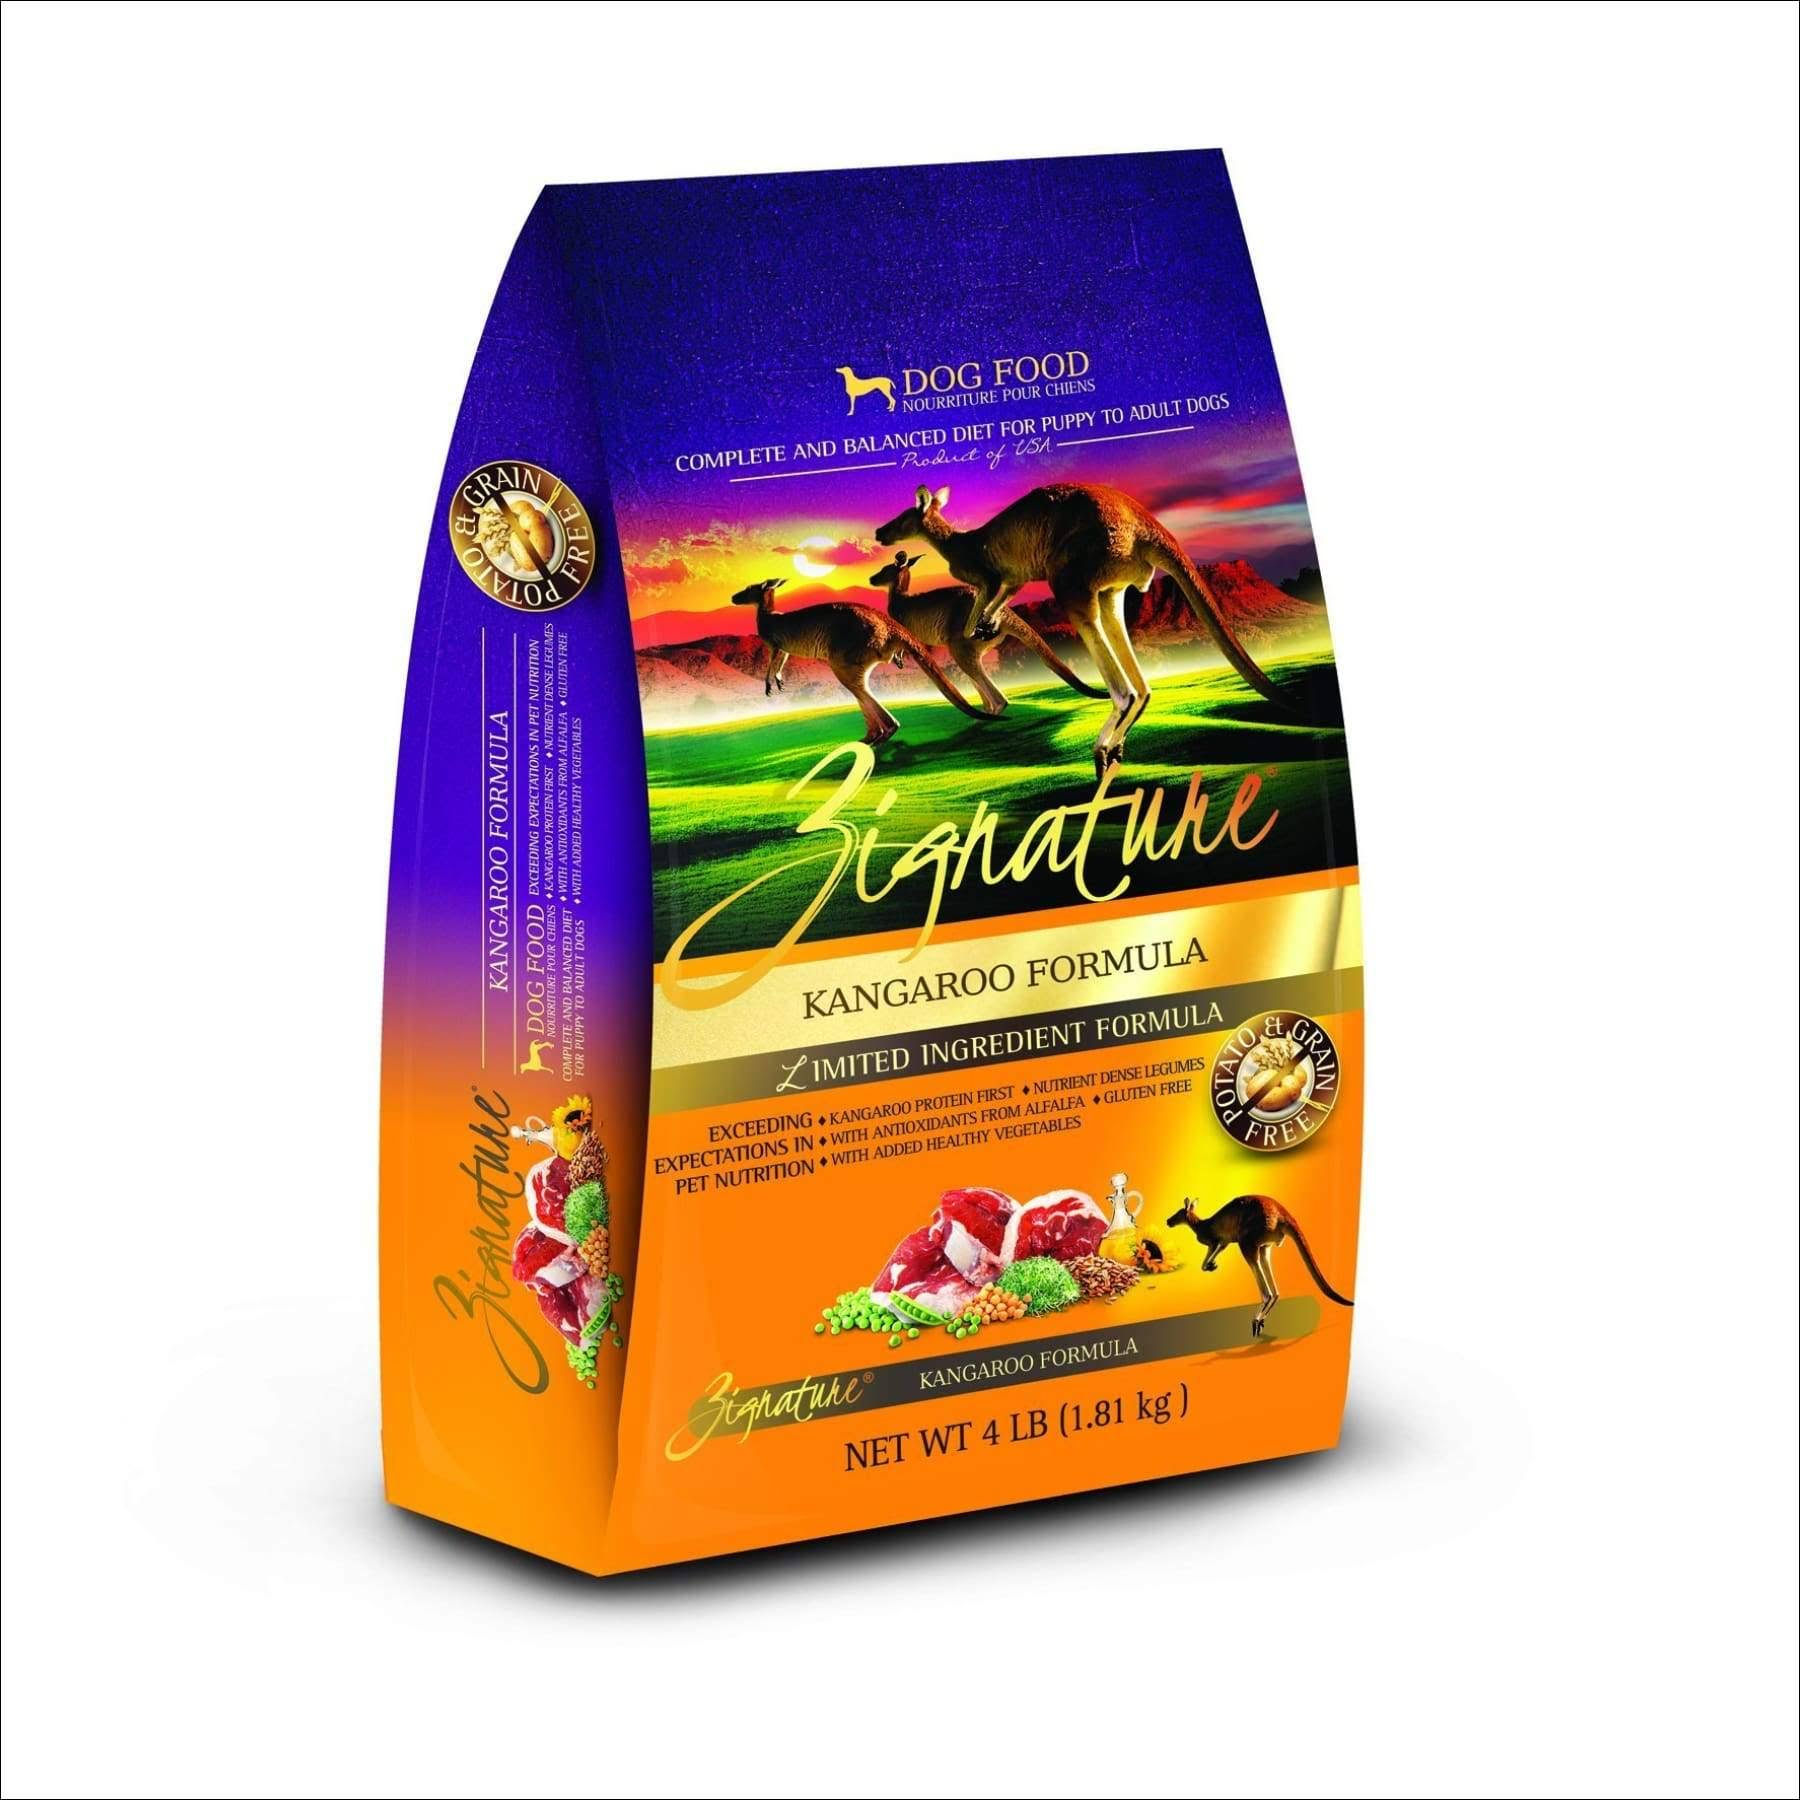 Zignature Kangaroo Formula Dog Food - 4lb